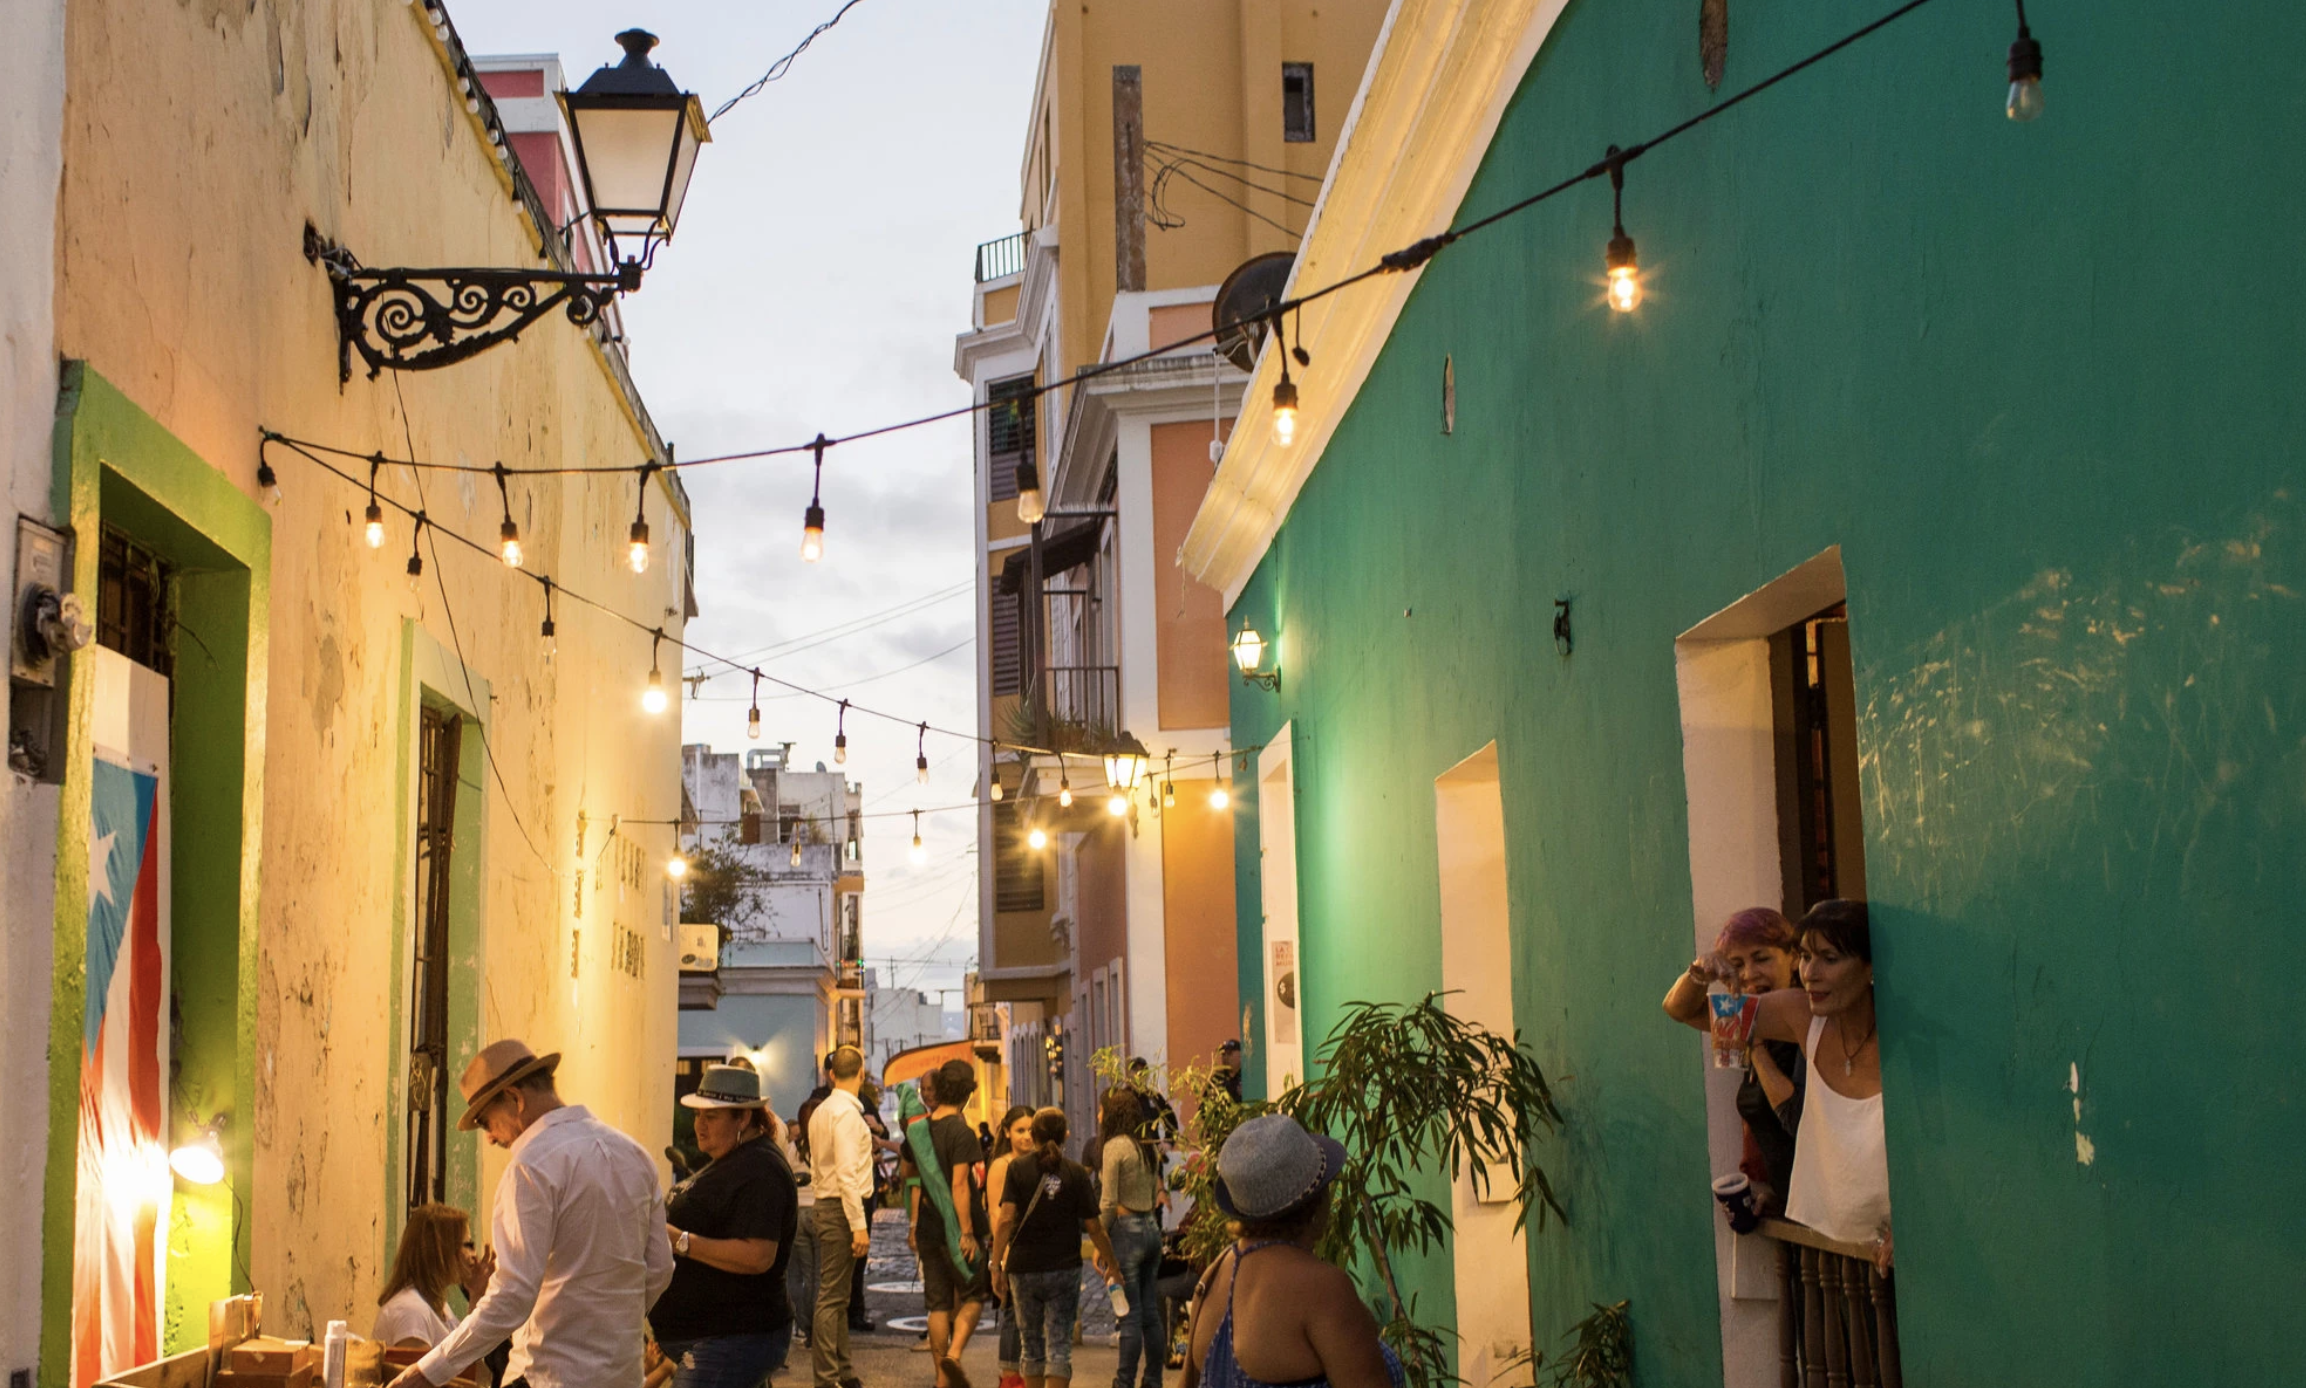 THE NEW YORK TIMES - 36 Hours in San Juan, Puerto Rico